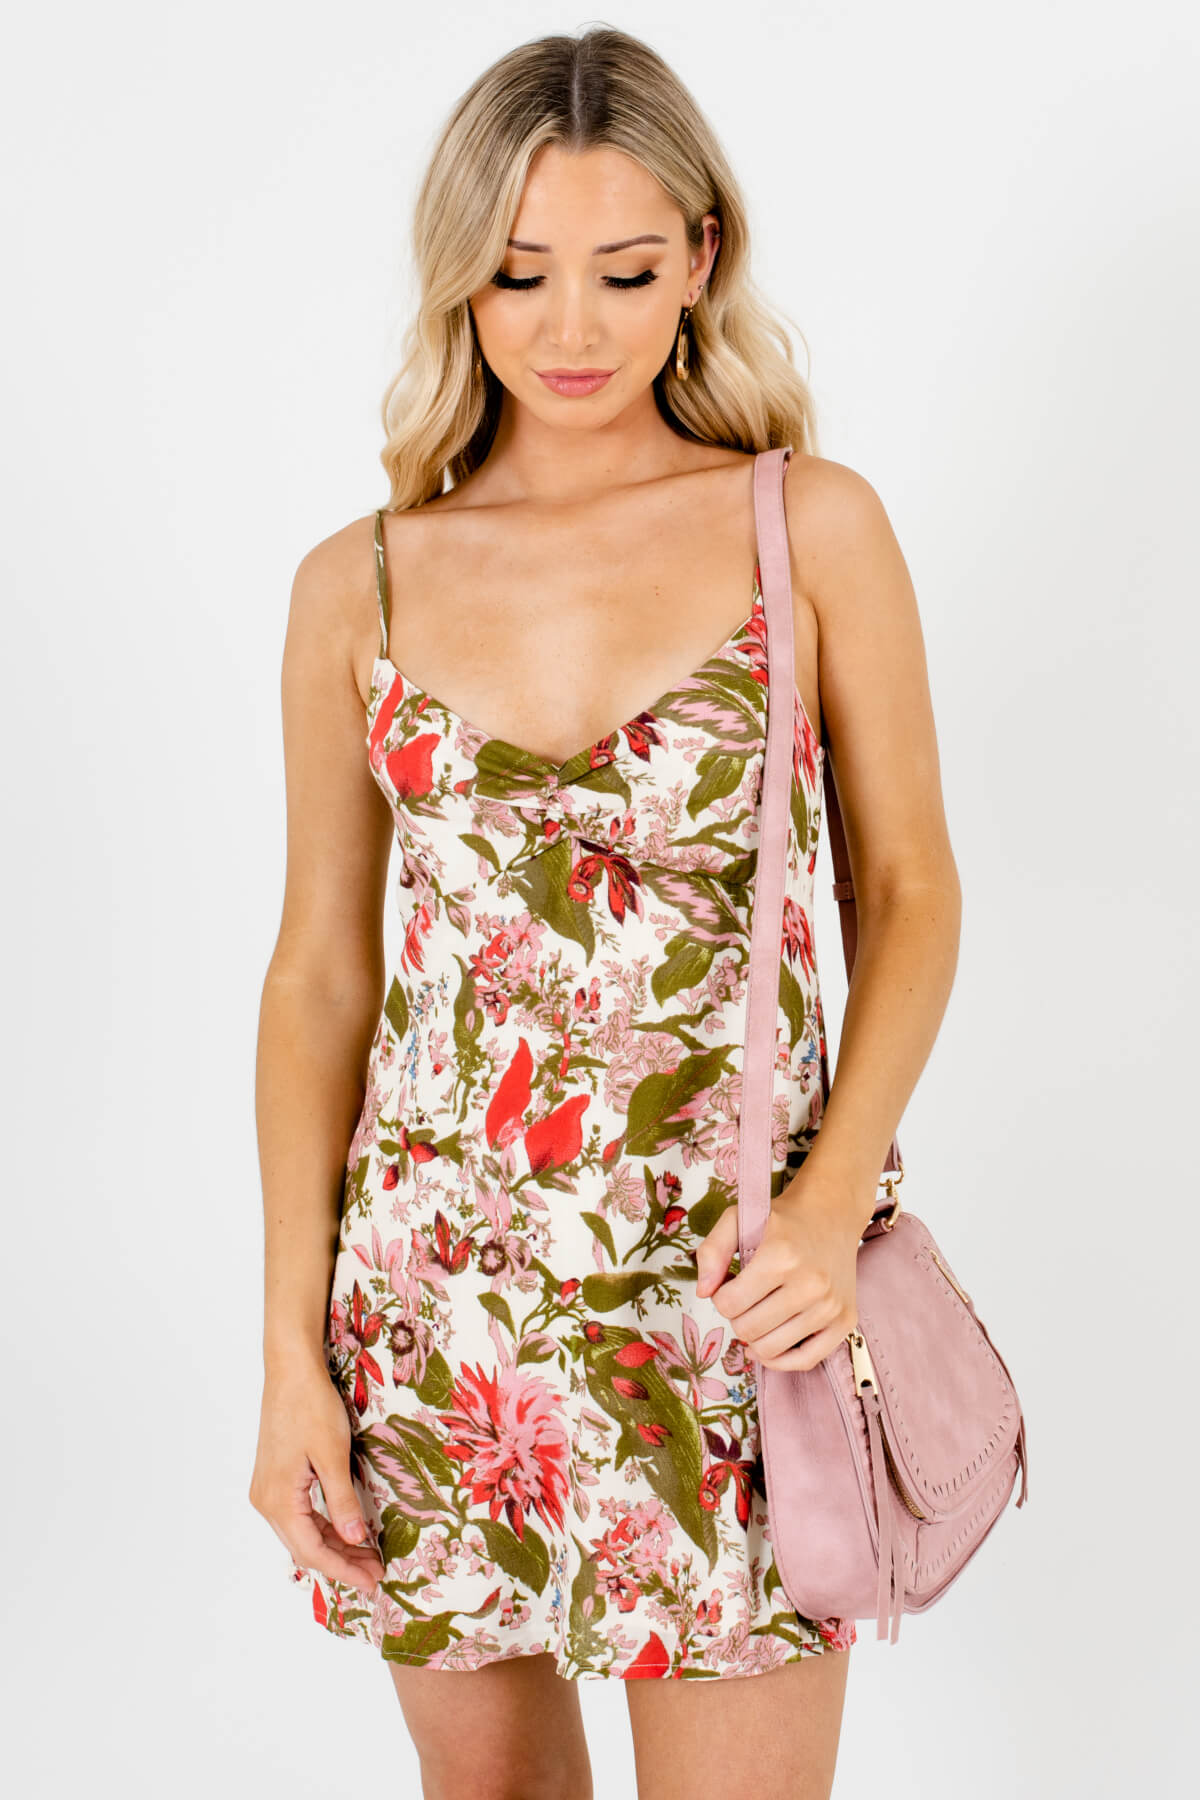 Cream Multicolored Floral Tropical Patterned Boutique Mini Dresses for Women